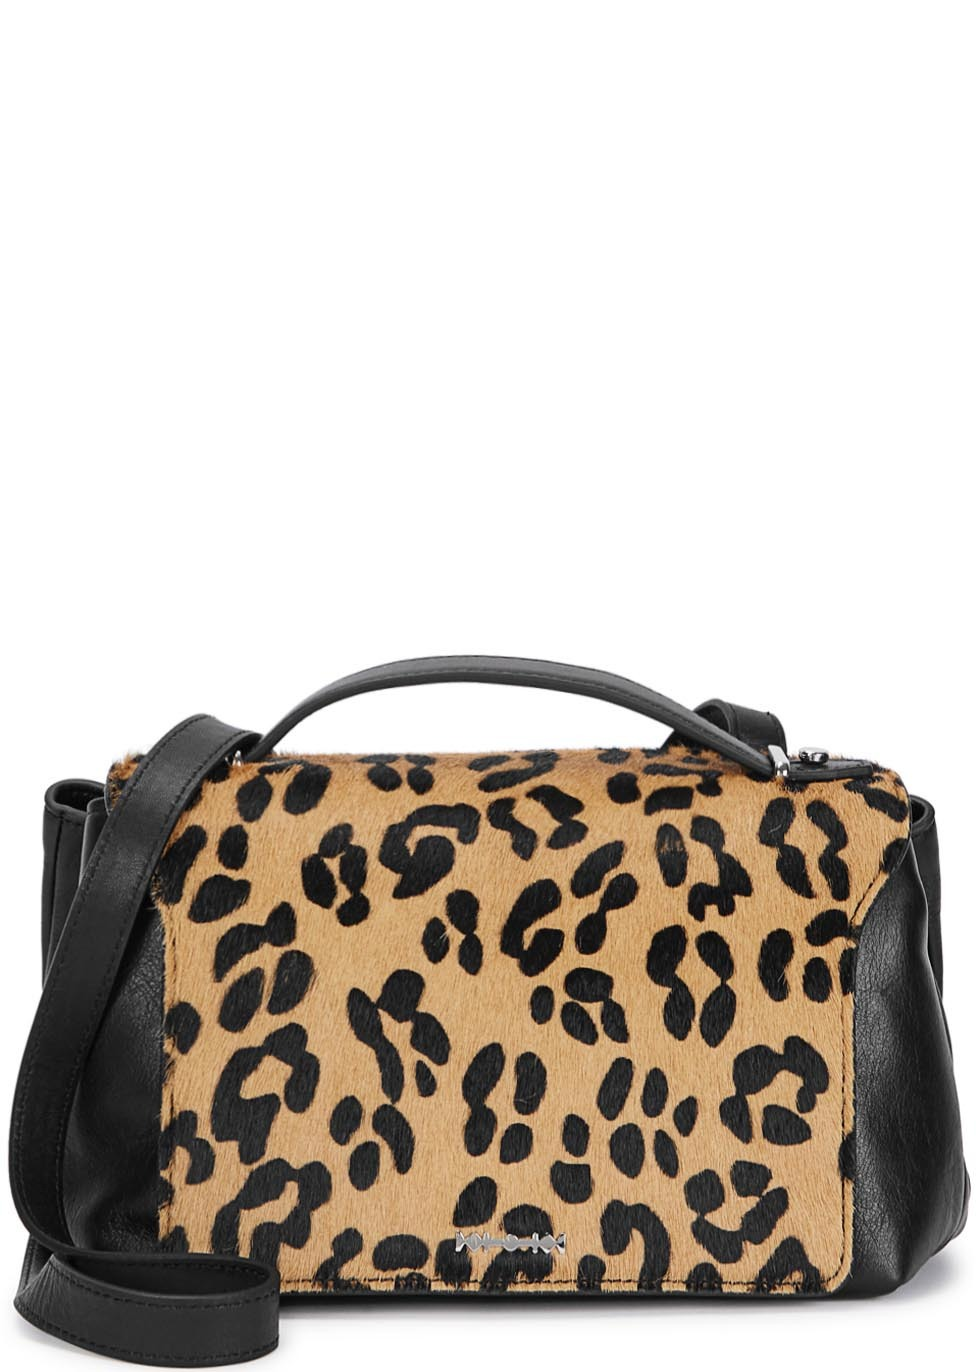 Mini Riot Leopard Print Shoulder Bag - predominant colour: camel; secondary colour: black; occasions: casual, creative work; type of pattern: small; style: grab bag; length: handle; size: small; material: animal skin; pattern: animal print; finish: plain; season: a/w 2015